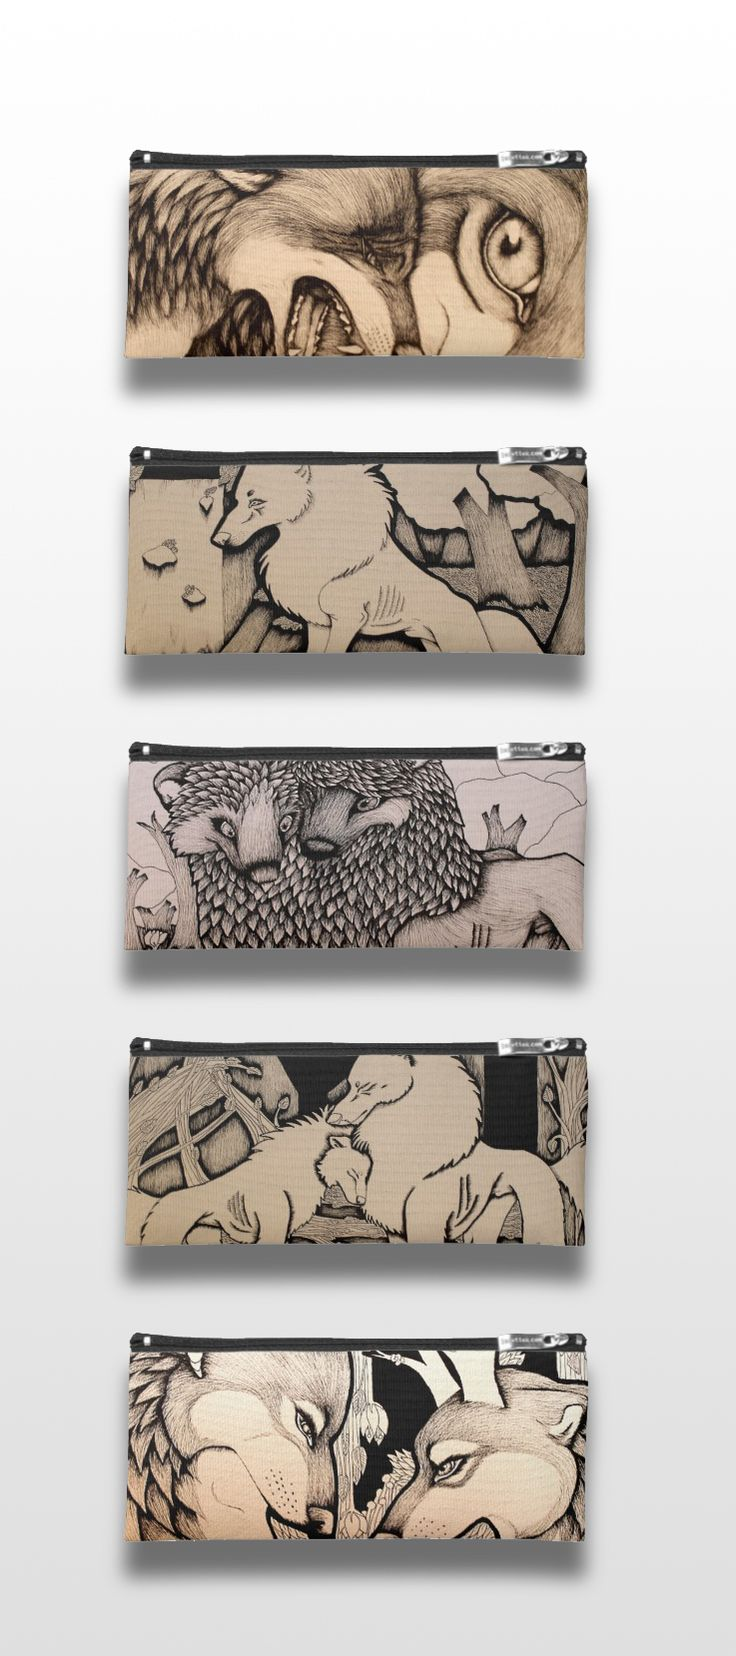 Black and White Illustrated Wolf Pencil Cases  #wolf_products #wolf_art #wolf_illustration #cute #sad #detailed #art #illustration #animals